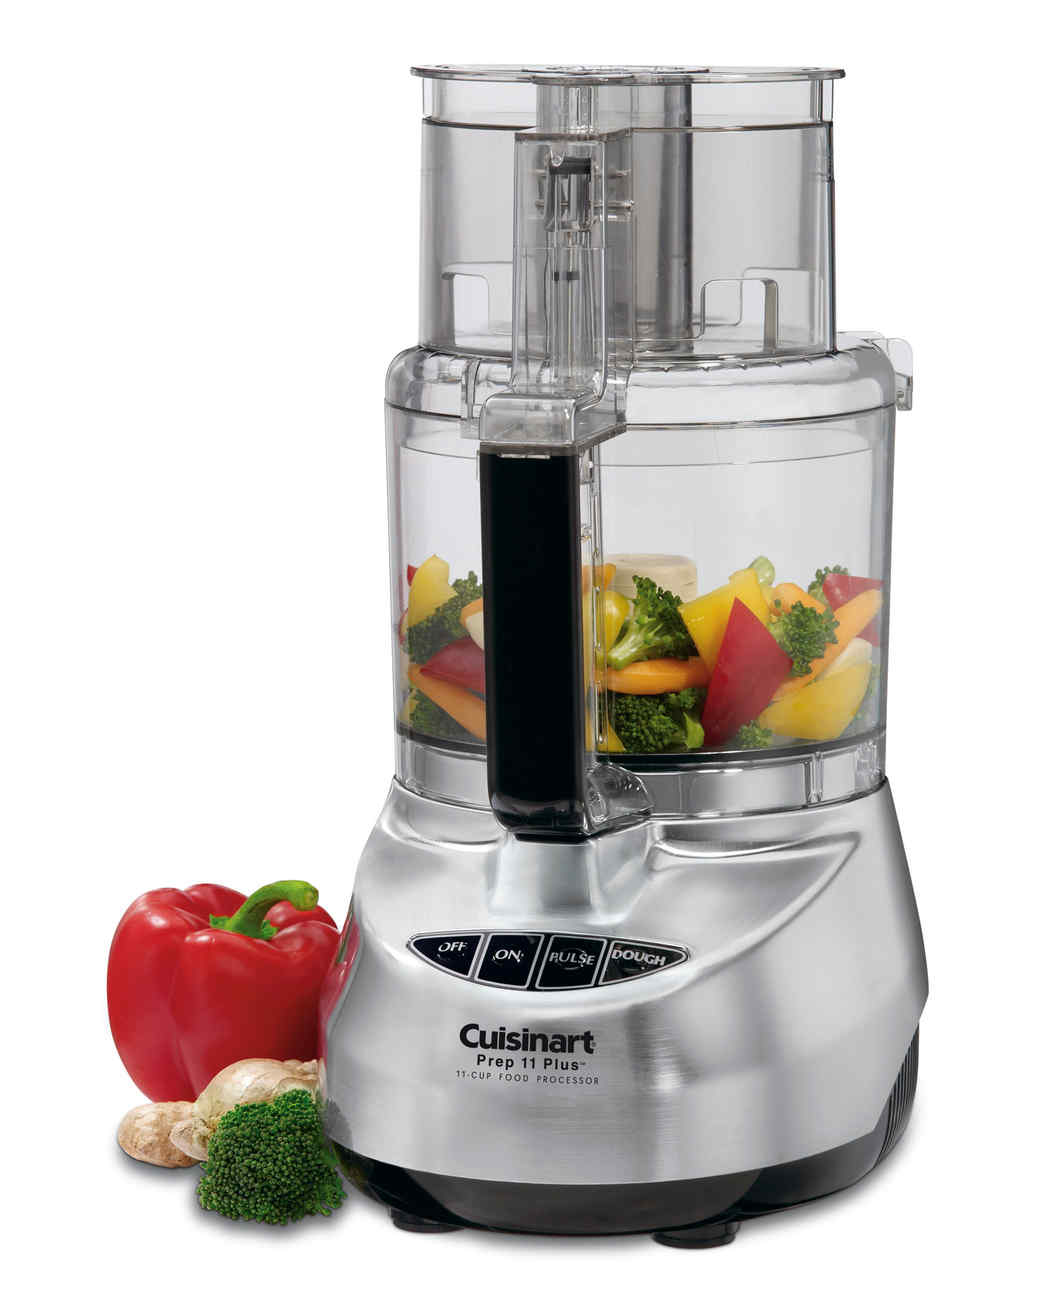 prep-11-plus-11-cup-food-processor.jpg